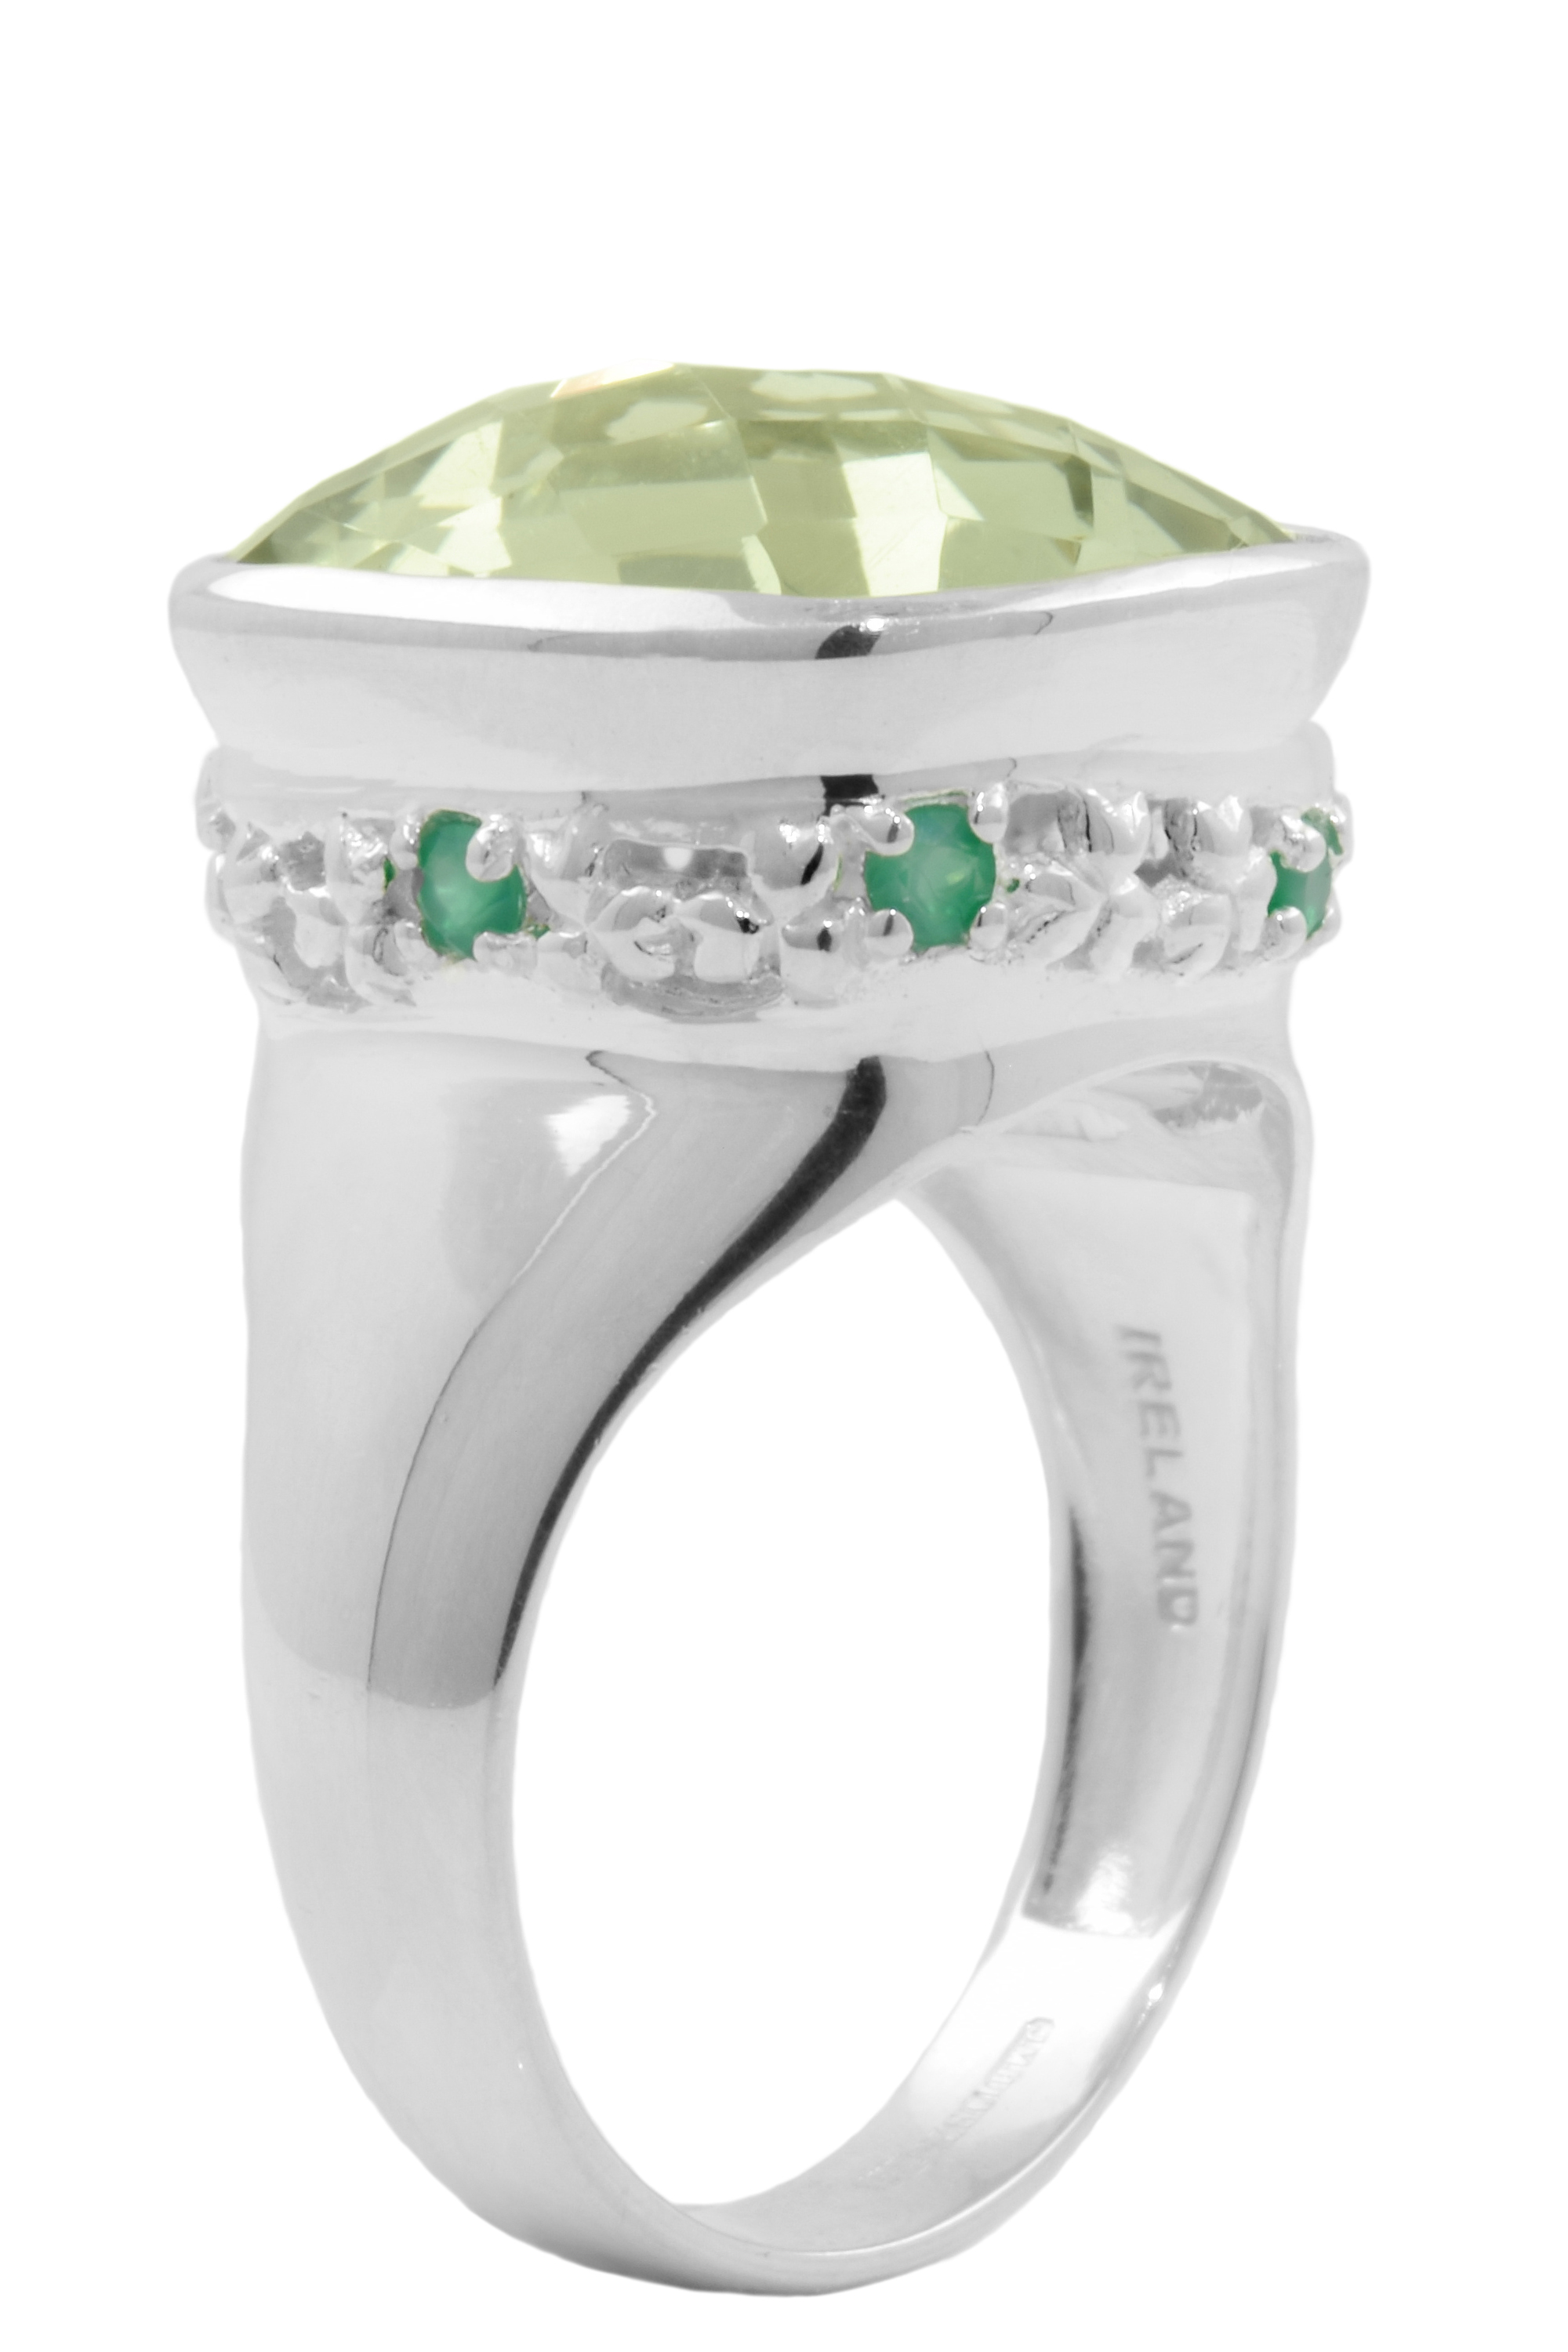 Shamrock Ring - Green Amethyst and Green Agate Shamrock Ring